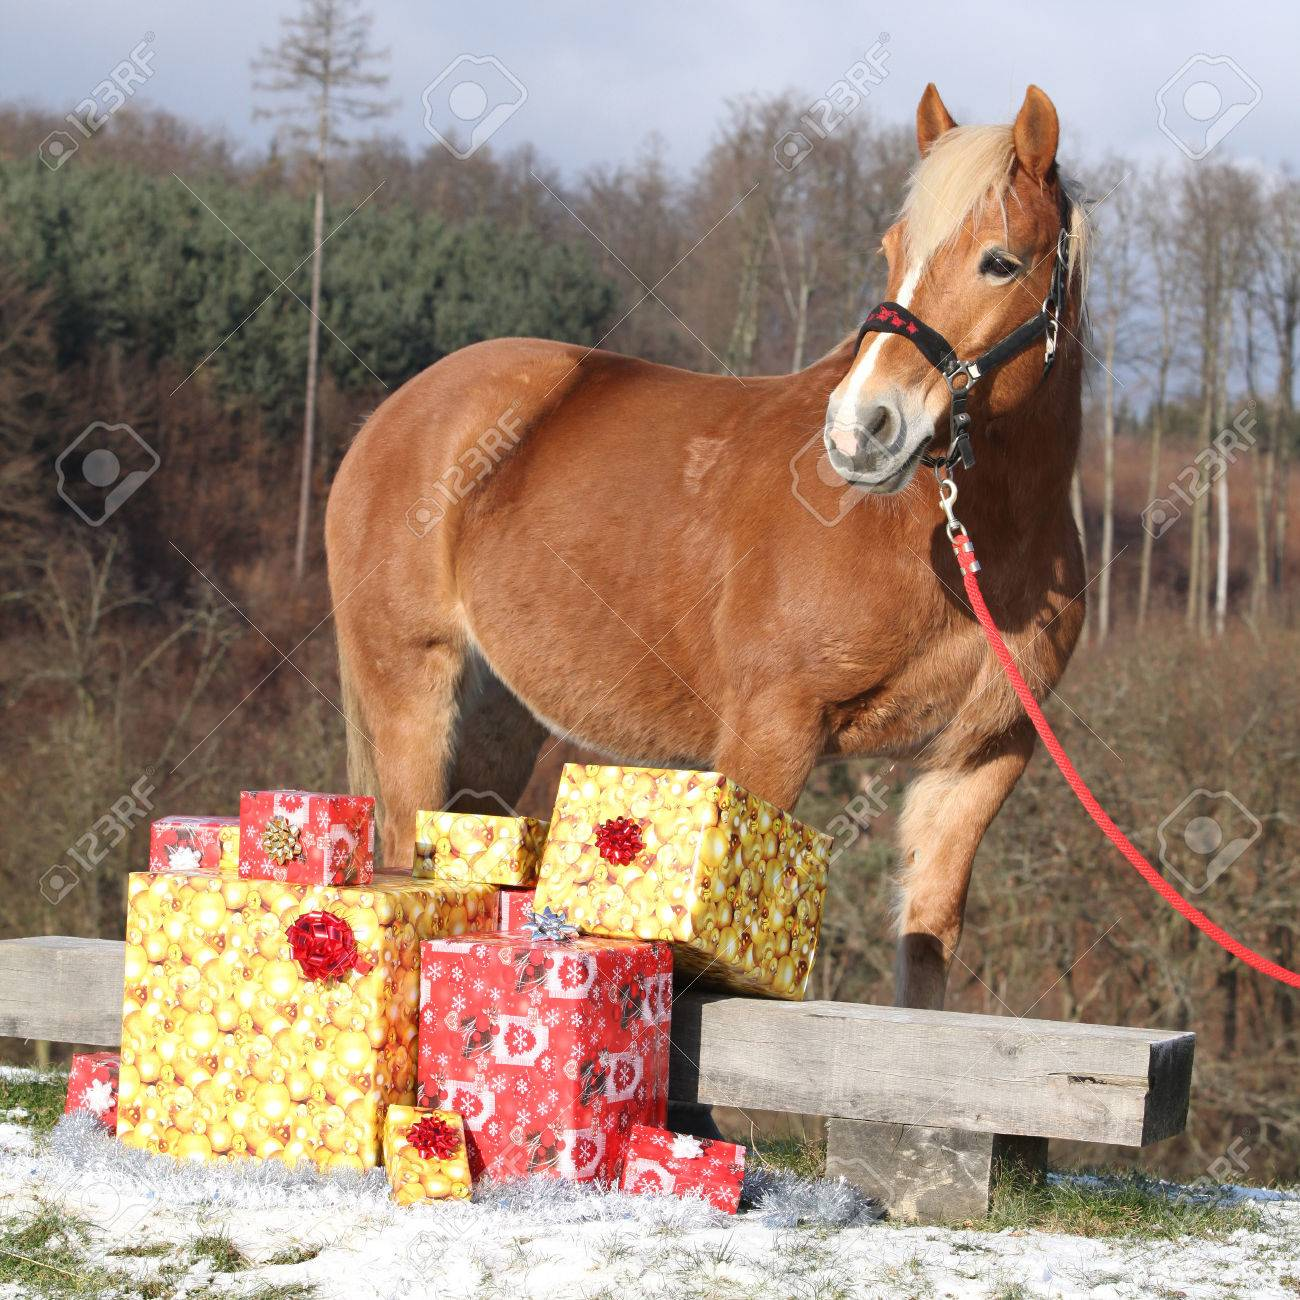 Christmas Horse Tack.Beautiful Chestnut Horse With Christmas Gifts Outside